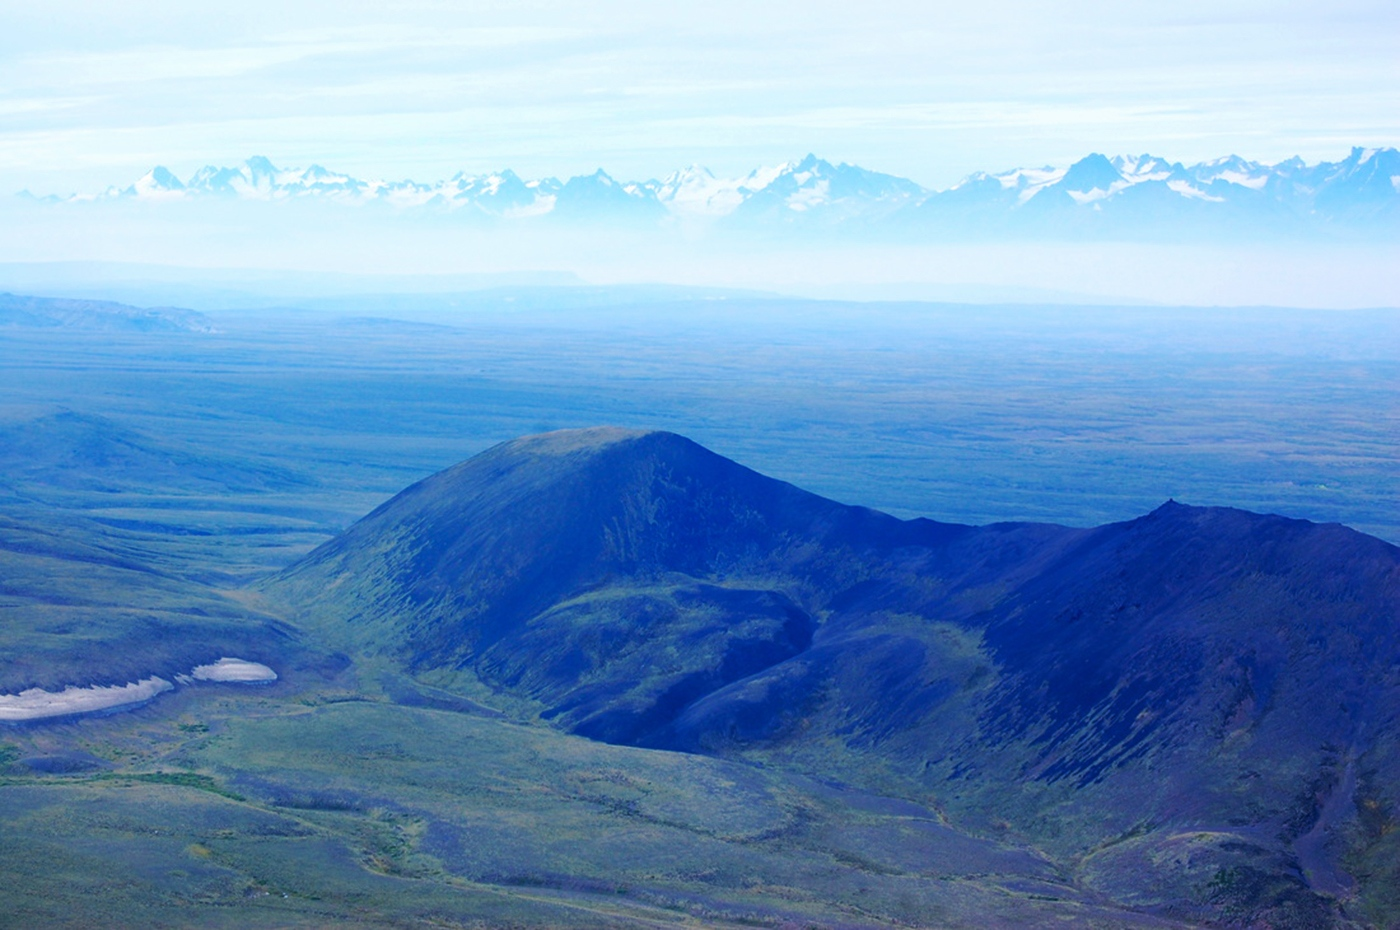 The spectacular landscape of the Tahltan Nation is home to wolves, grizzly bears and caribou. Curtis Rattray photo